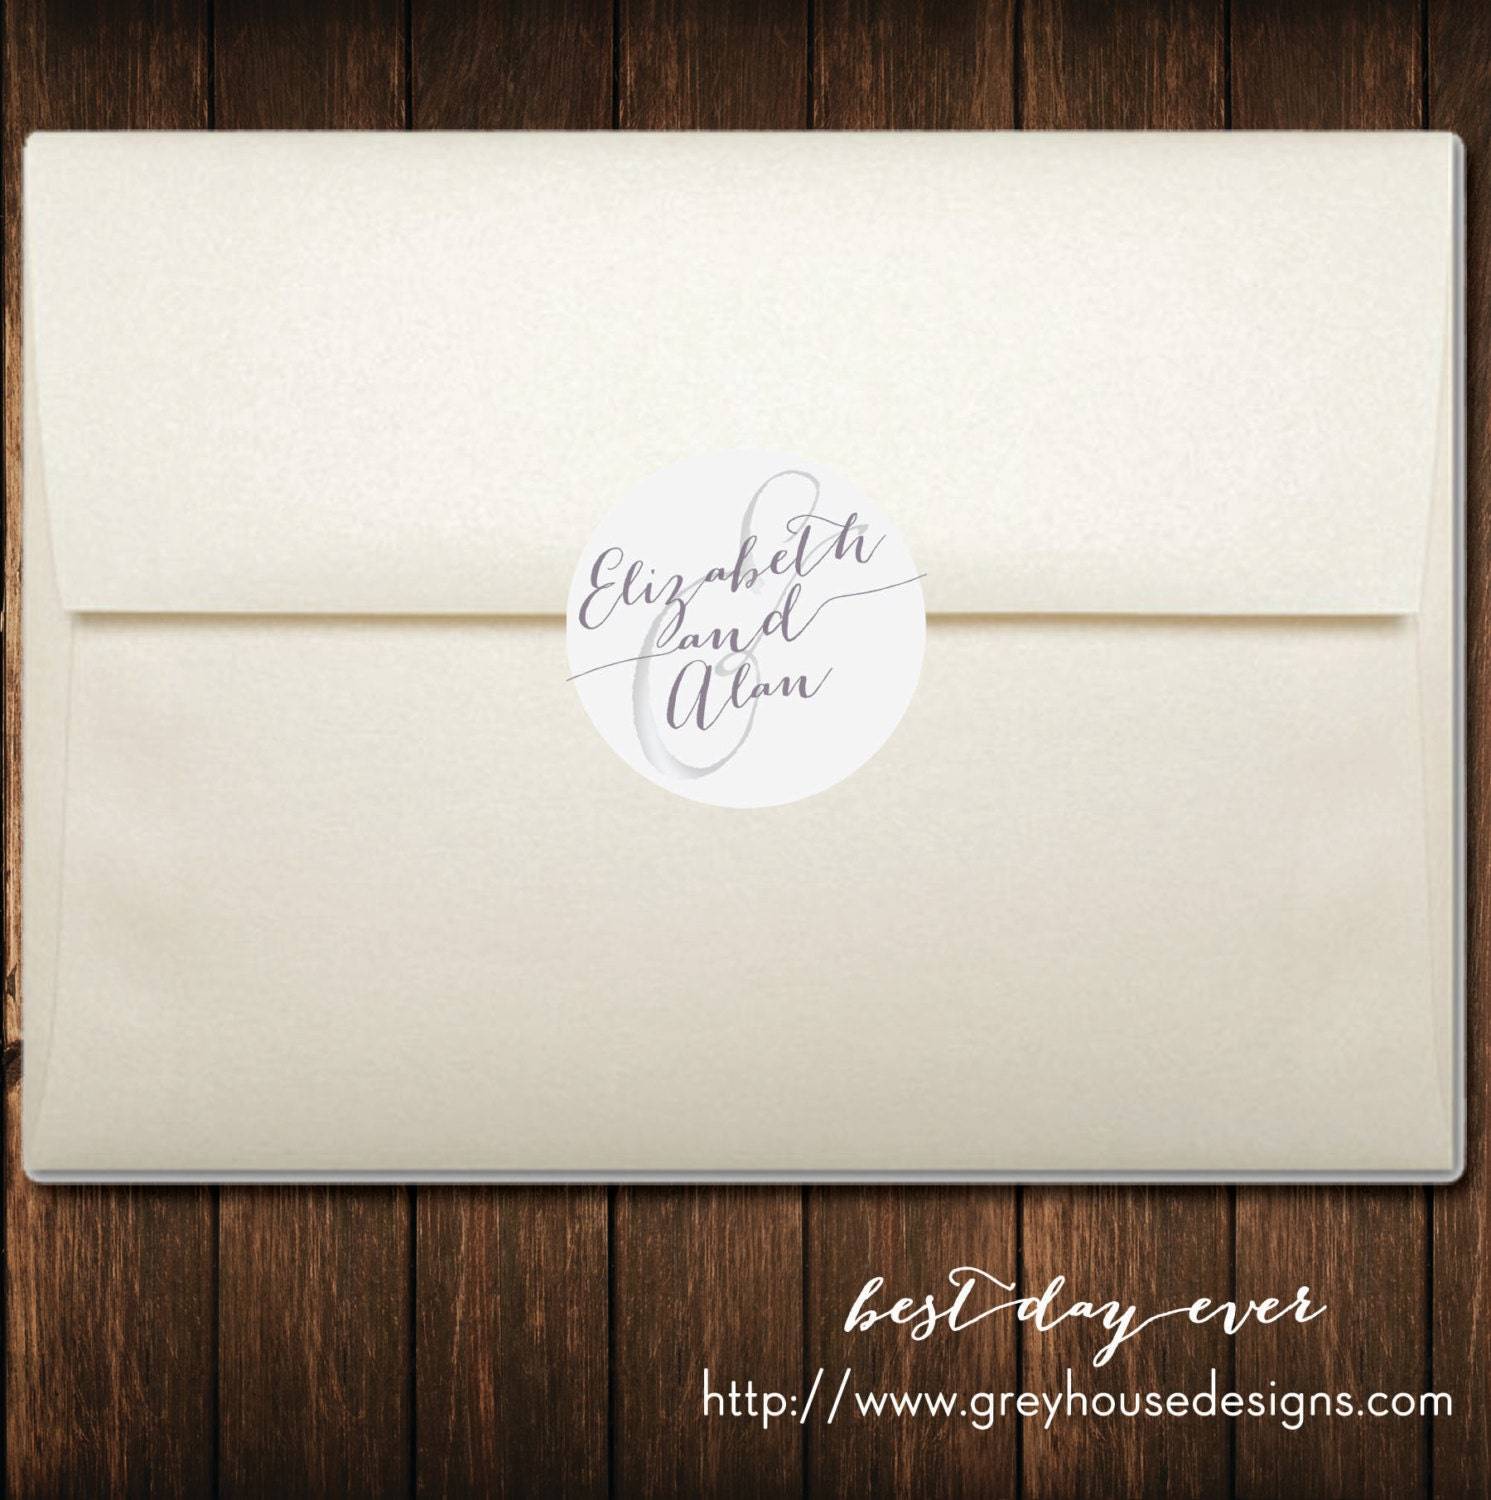 Best Day Ever Printable Wedding Envelope by